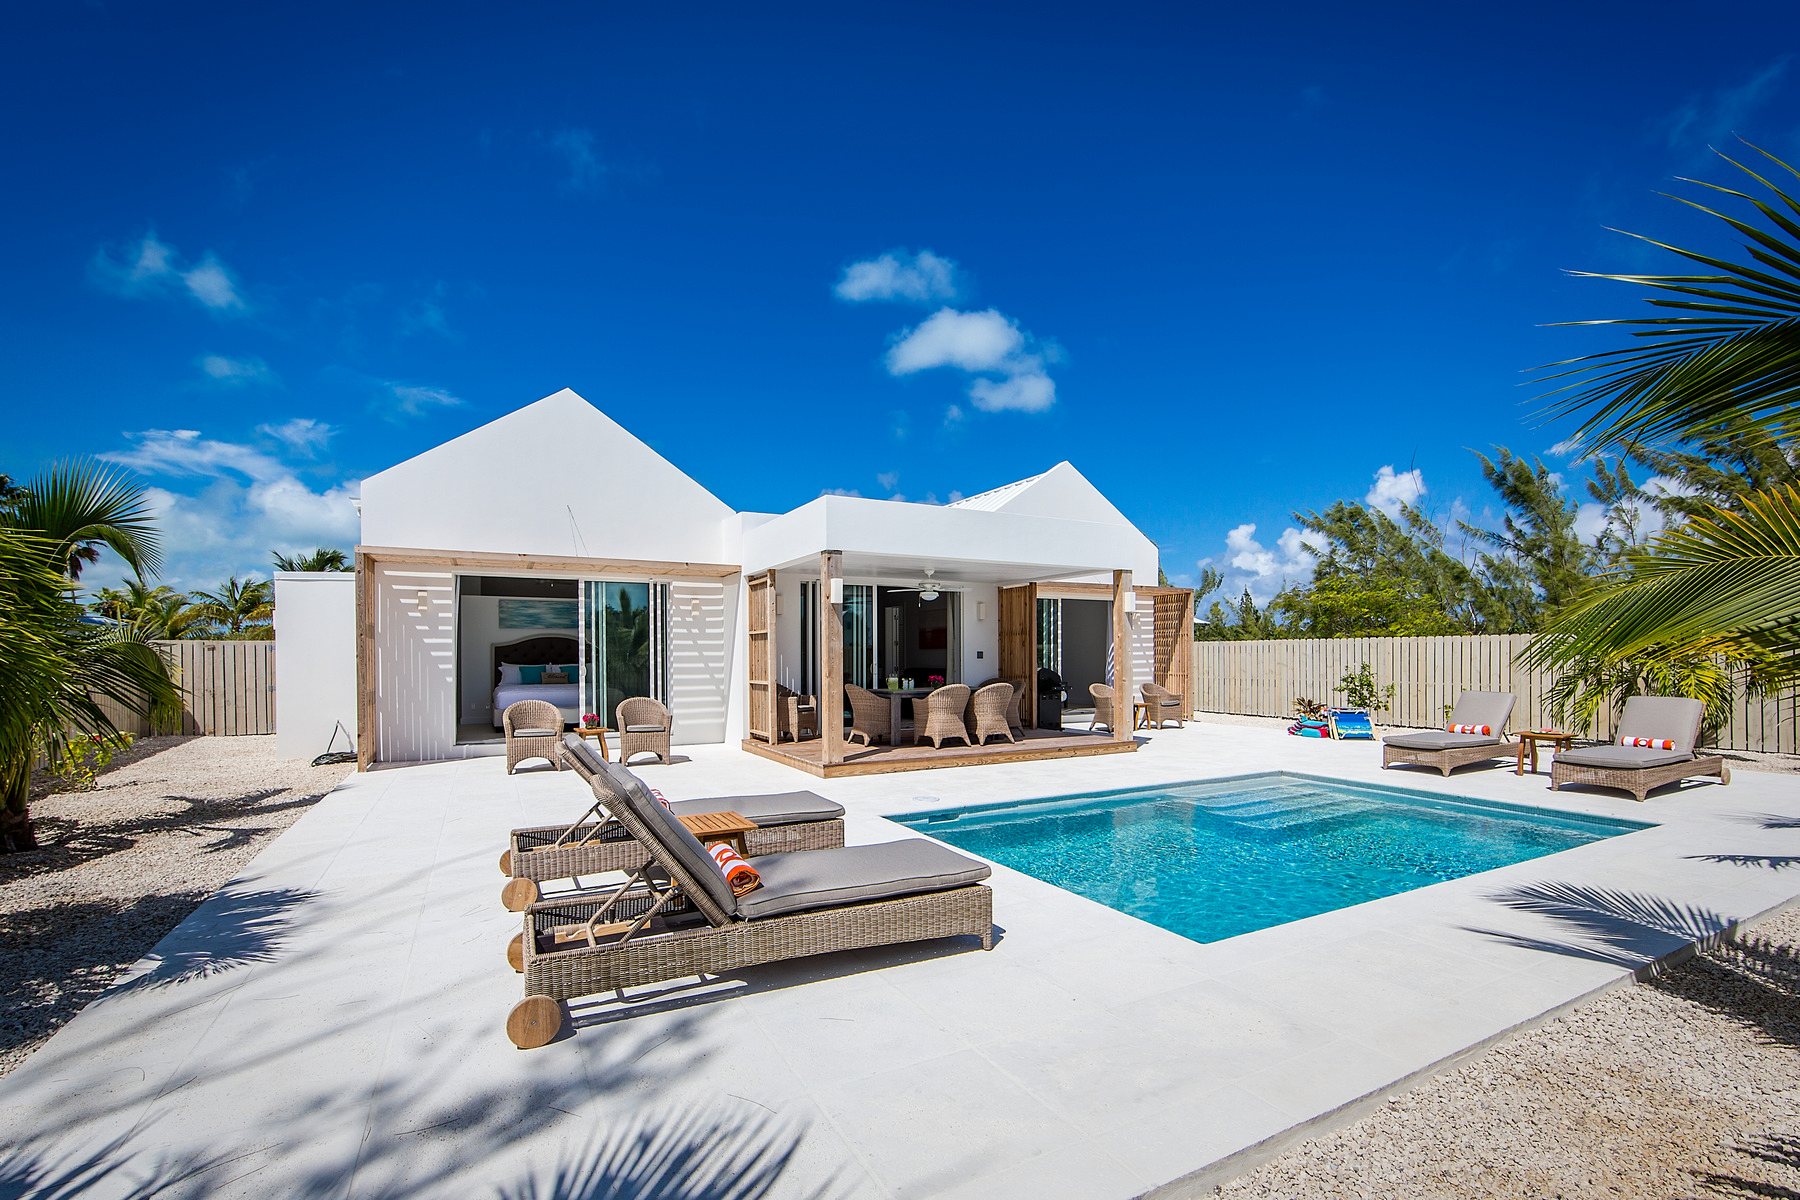 Additional photo for property listing at Caicos Dream Gardenview Leeward, Providenciales TCI Îles Turques Et Caïques